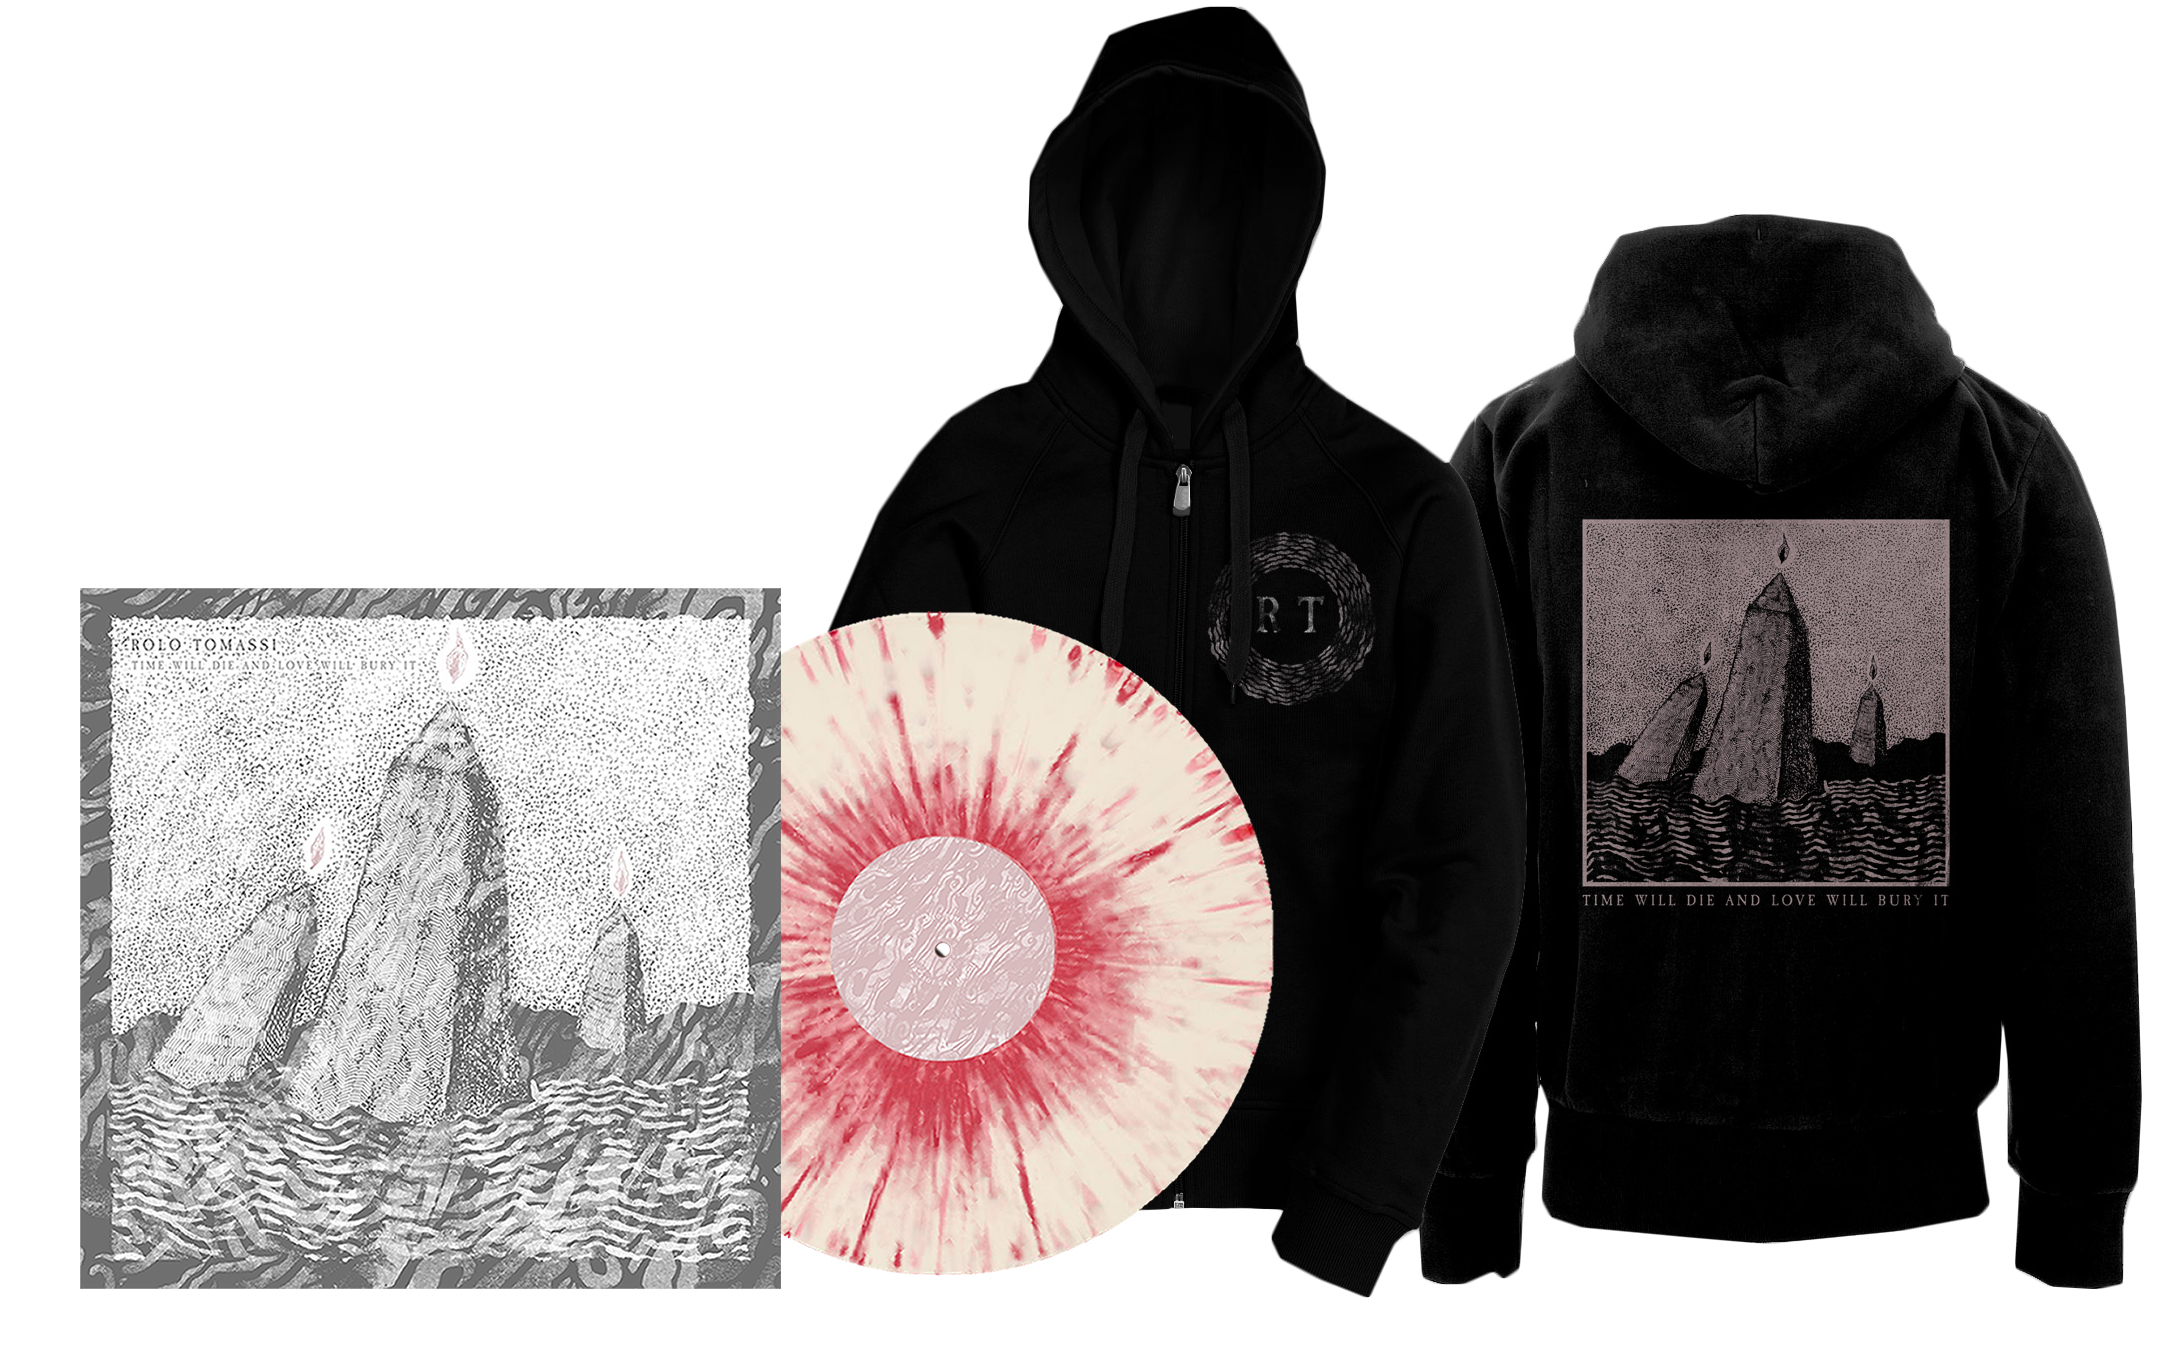 Rolo Tomassi - '...Love Will Bury It' 2xLP + hoodie